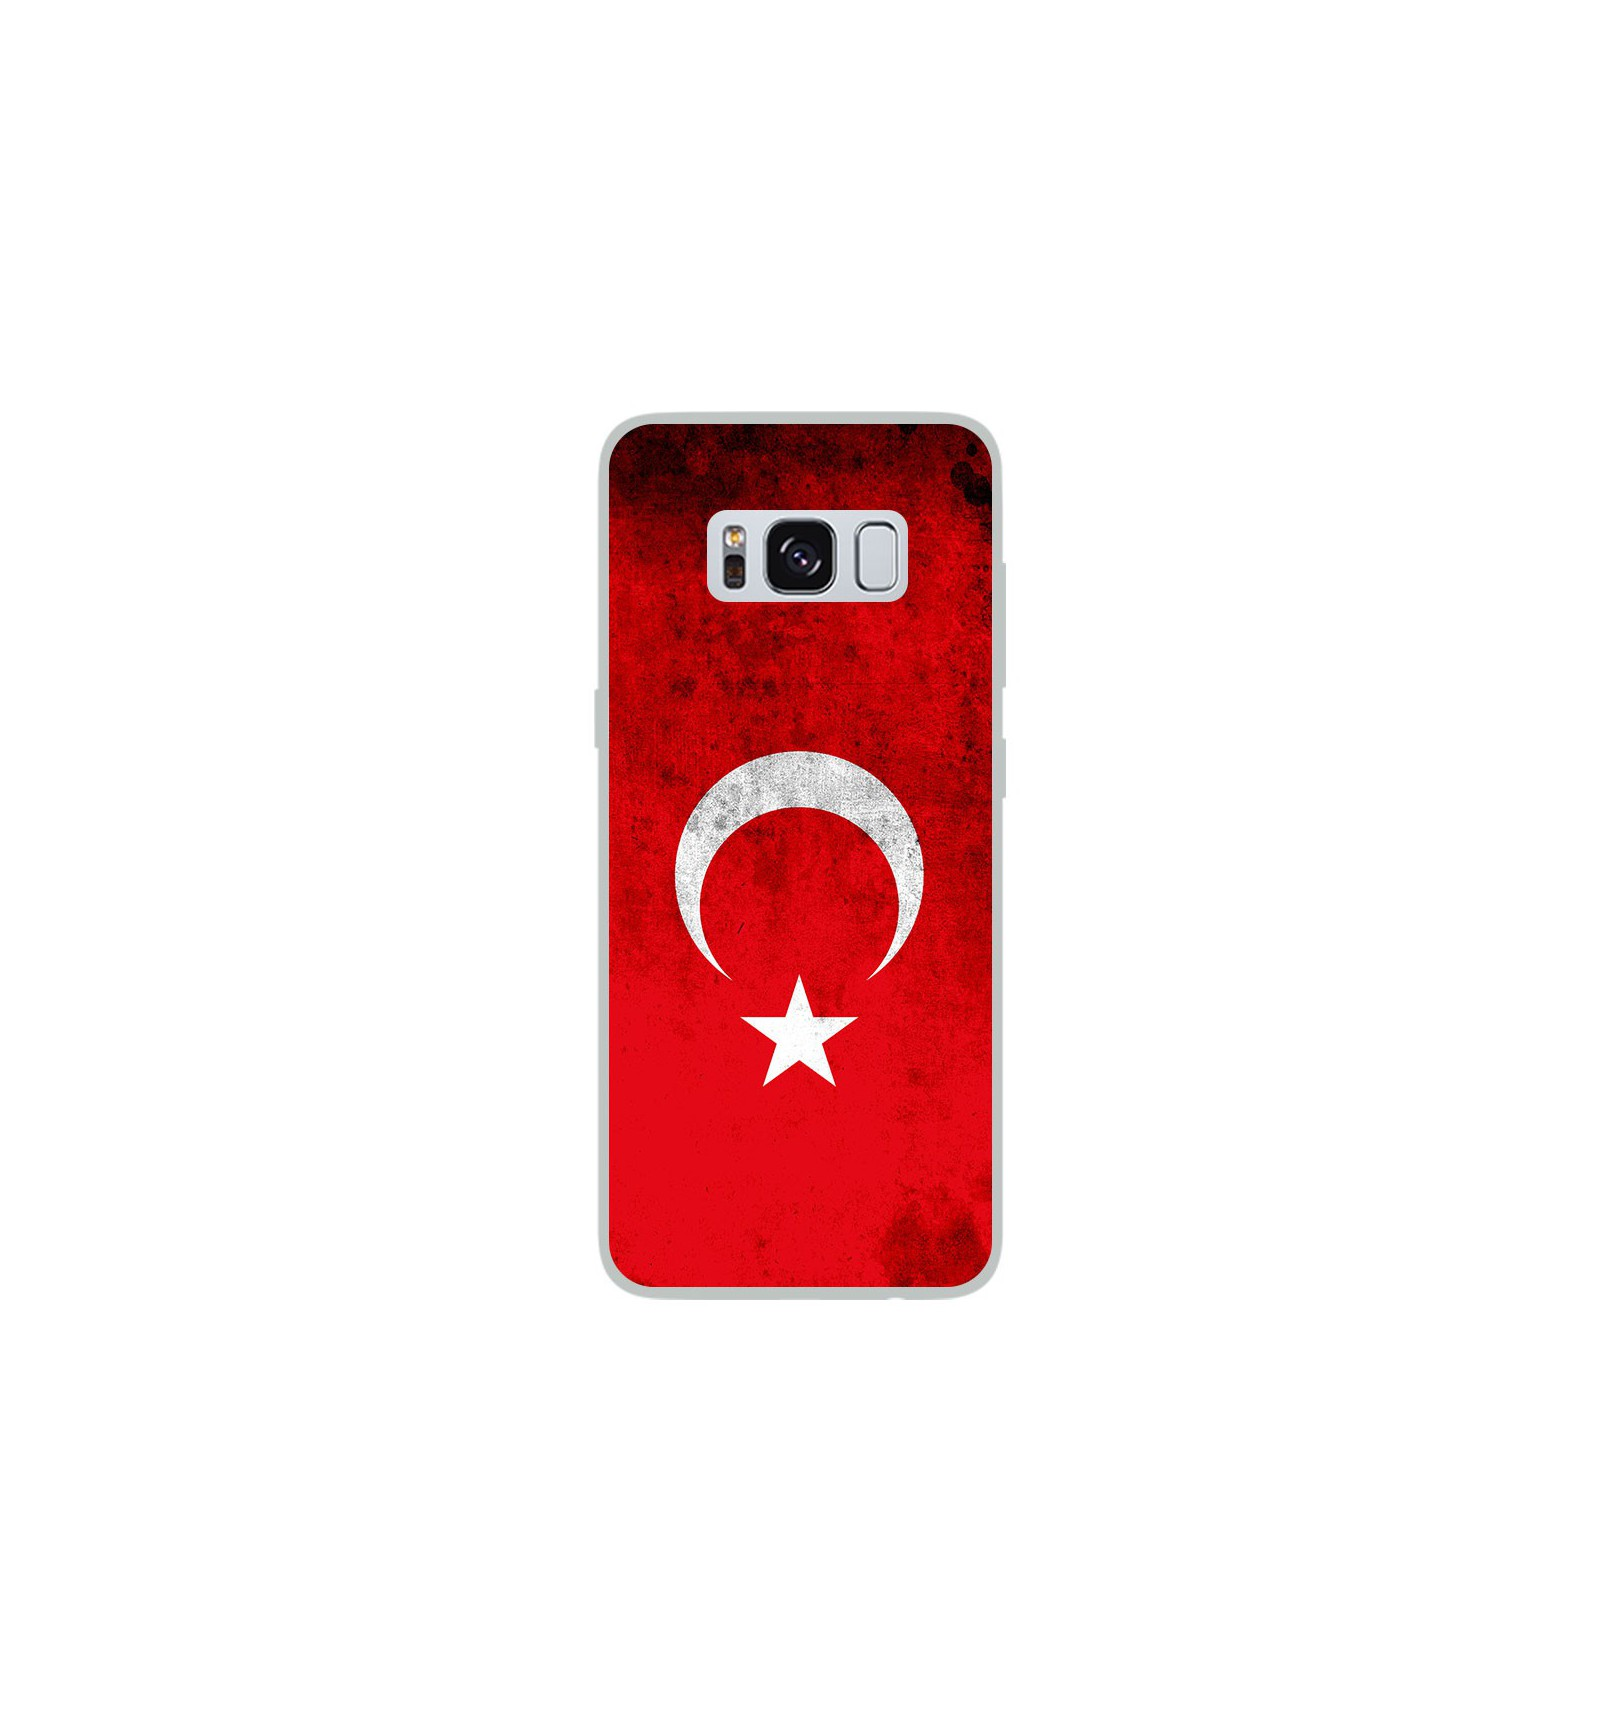 coque en silicone samsung galaxy s8 drapeau turquie. Black Bedroom Furniture Sets. Home Design Ideas